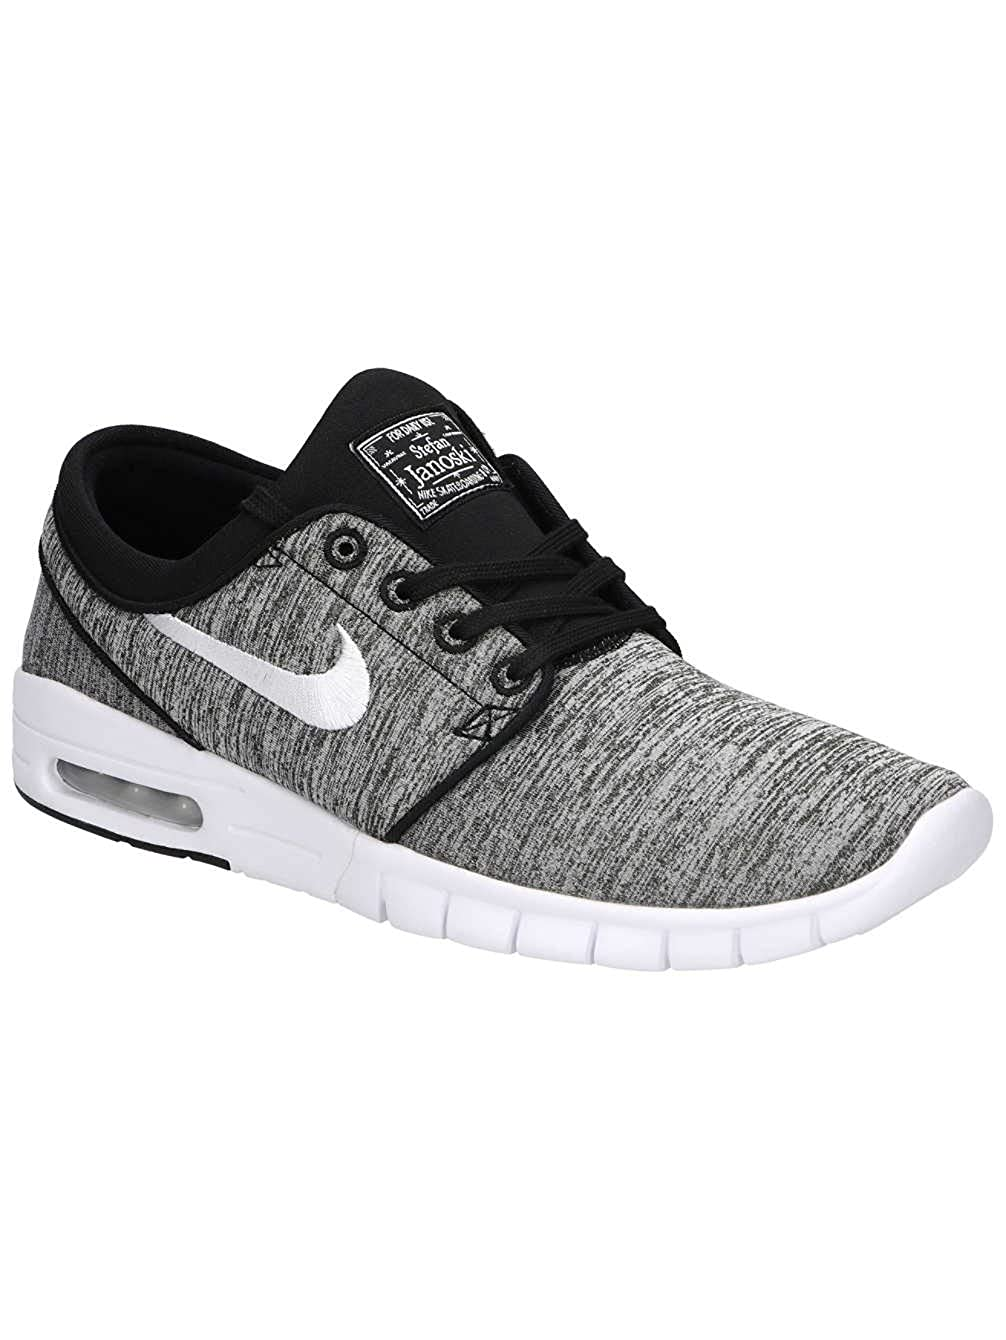 Amazon.com | Nike SB Stefan Janoski MAX Mens Sneaker 631303-028-size 10 Black/White | Shoes